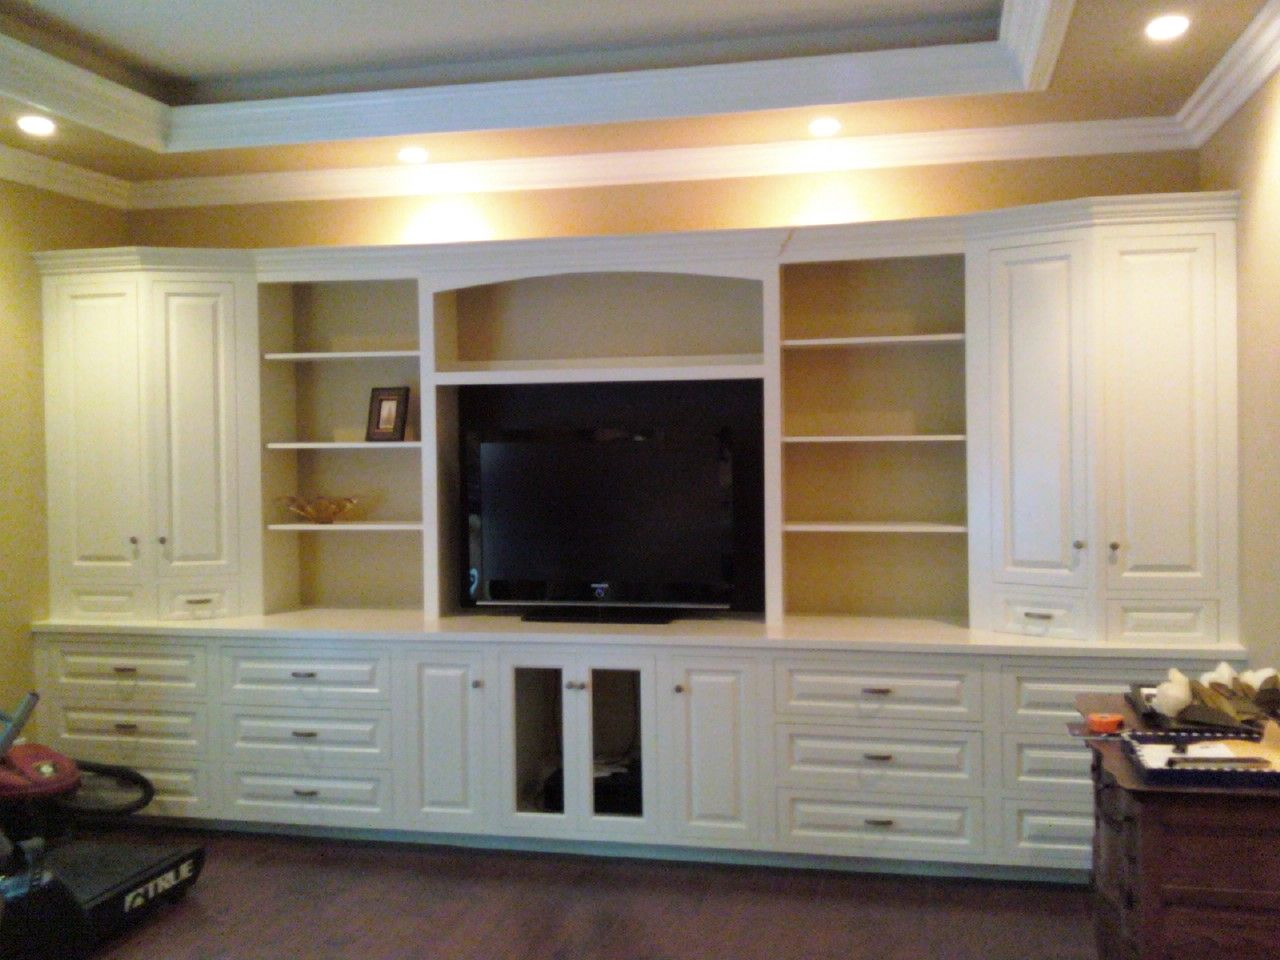 Living room wall units with storage wall units design ideas downstairs storage Master bedroom tv wall unit